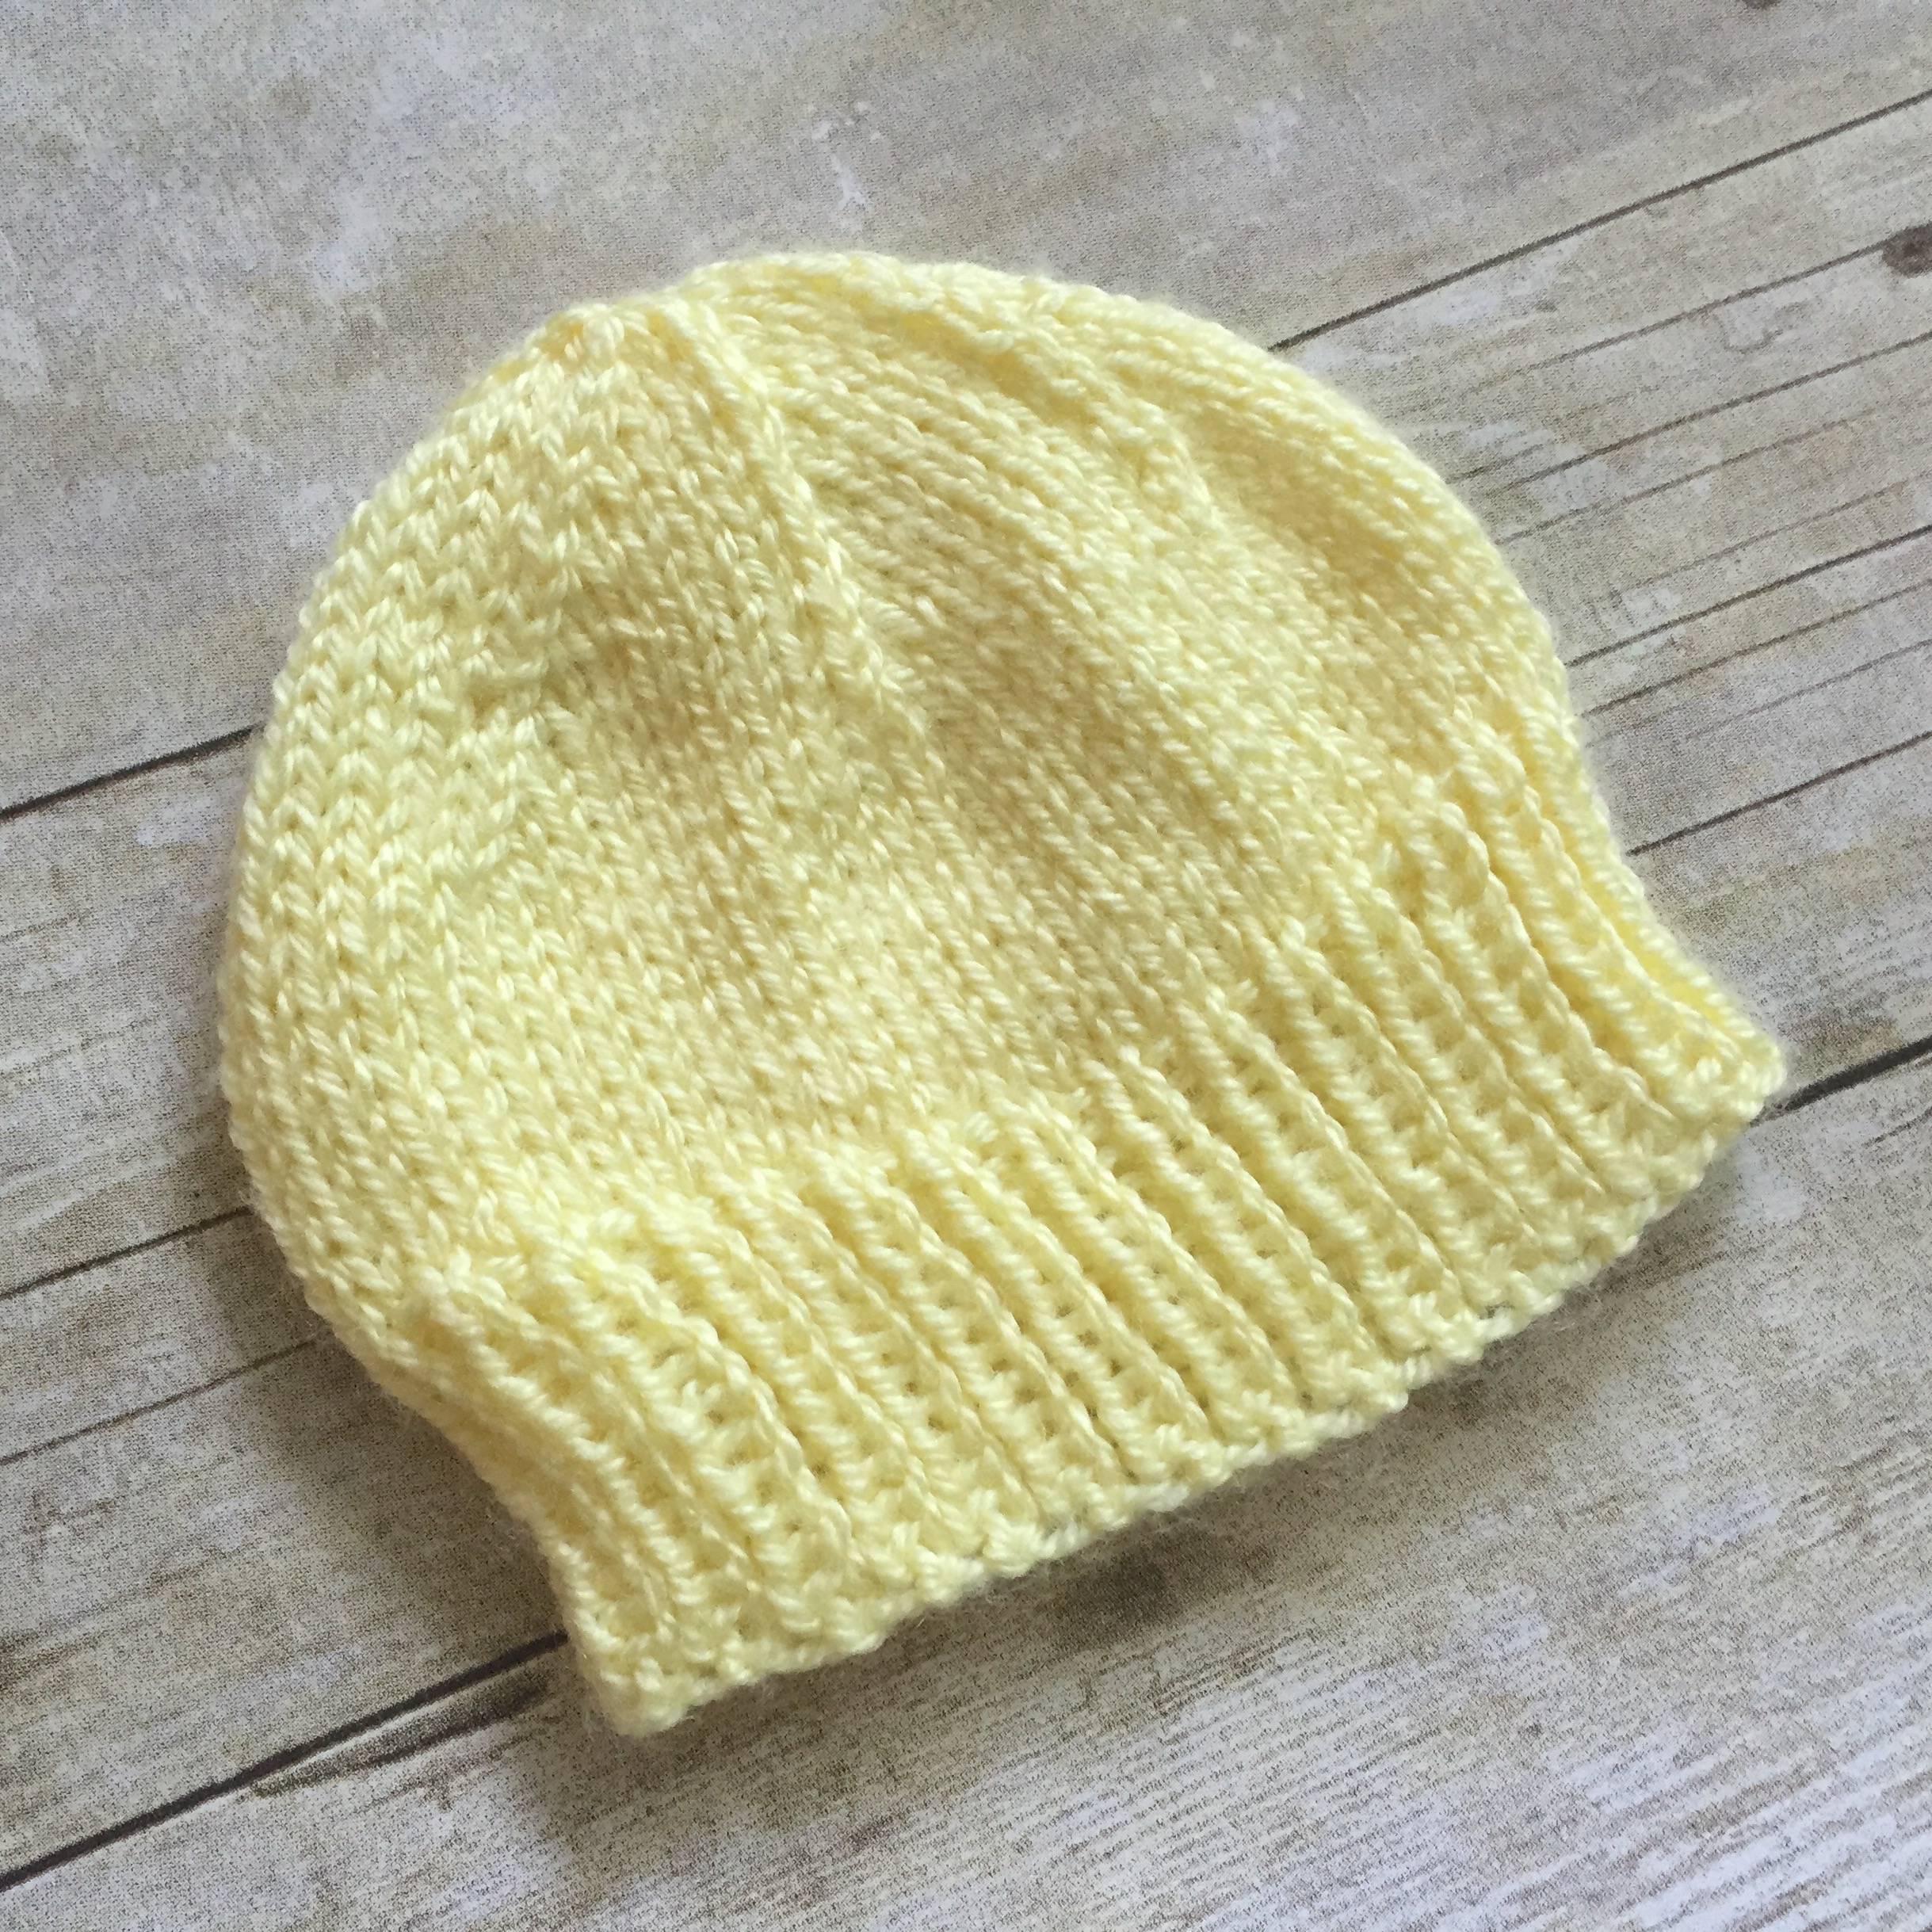 New Born Knitting Patterns Newborn Ba Hat To Knit Free Knitting Pattern Swanjay